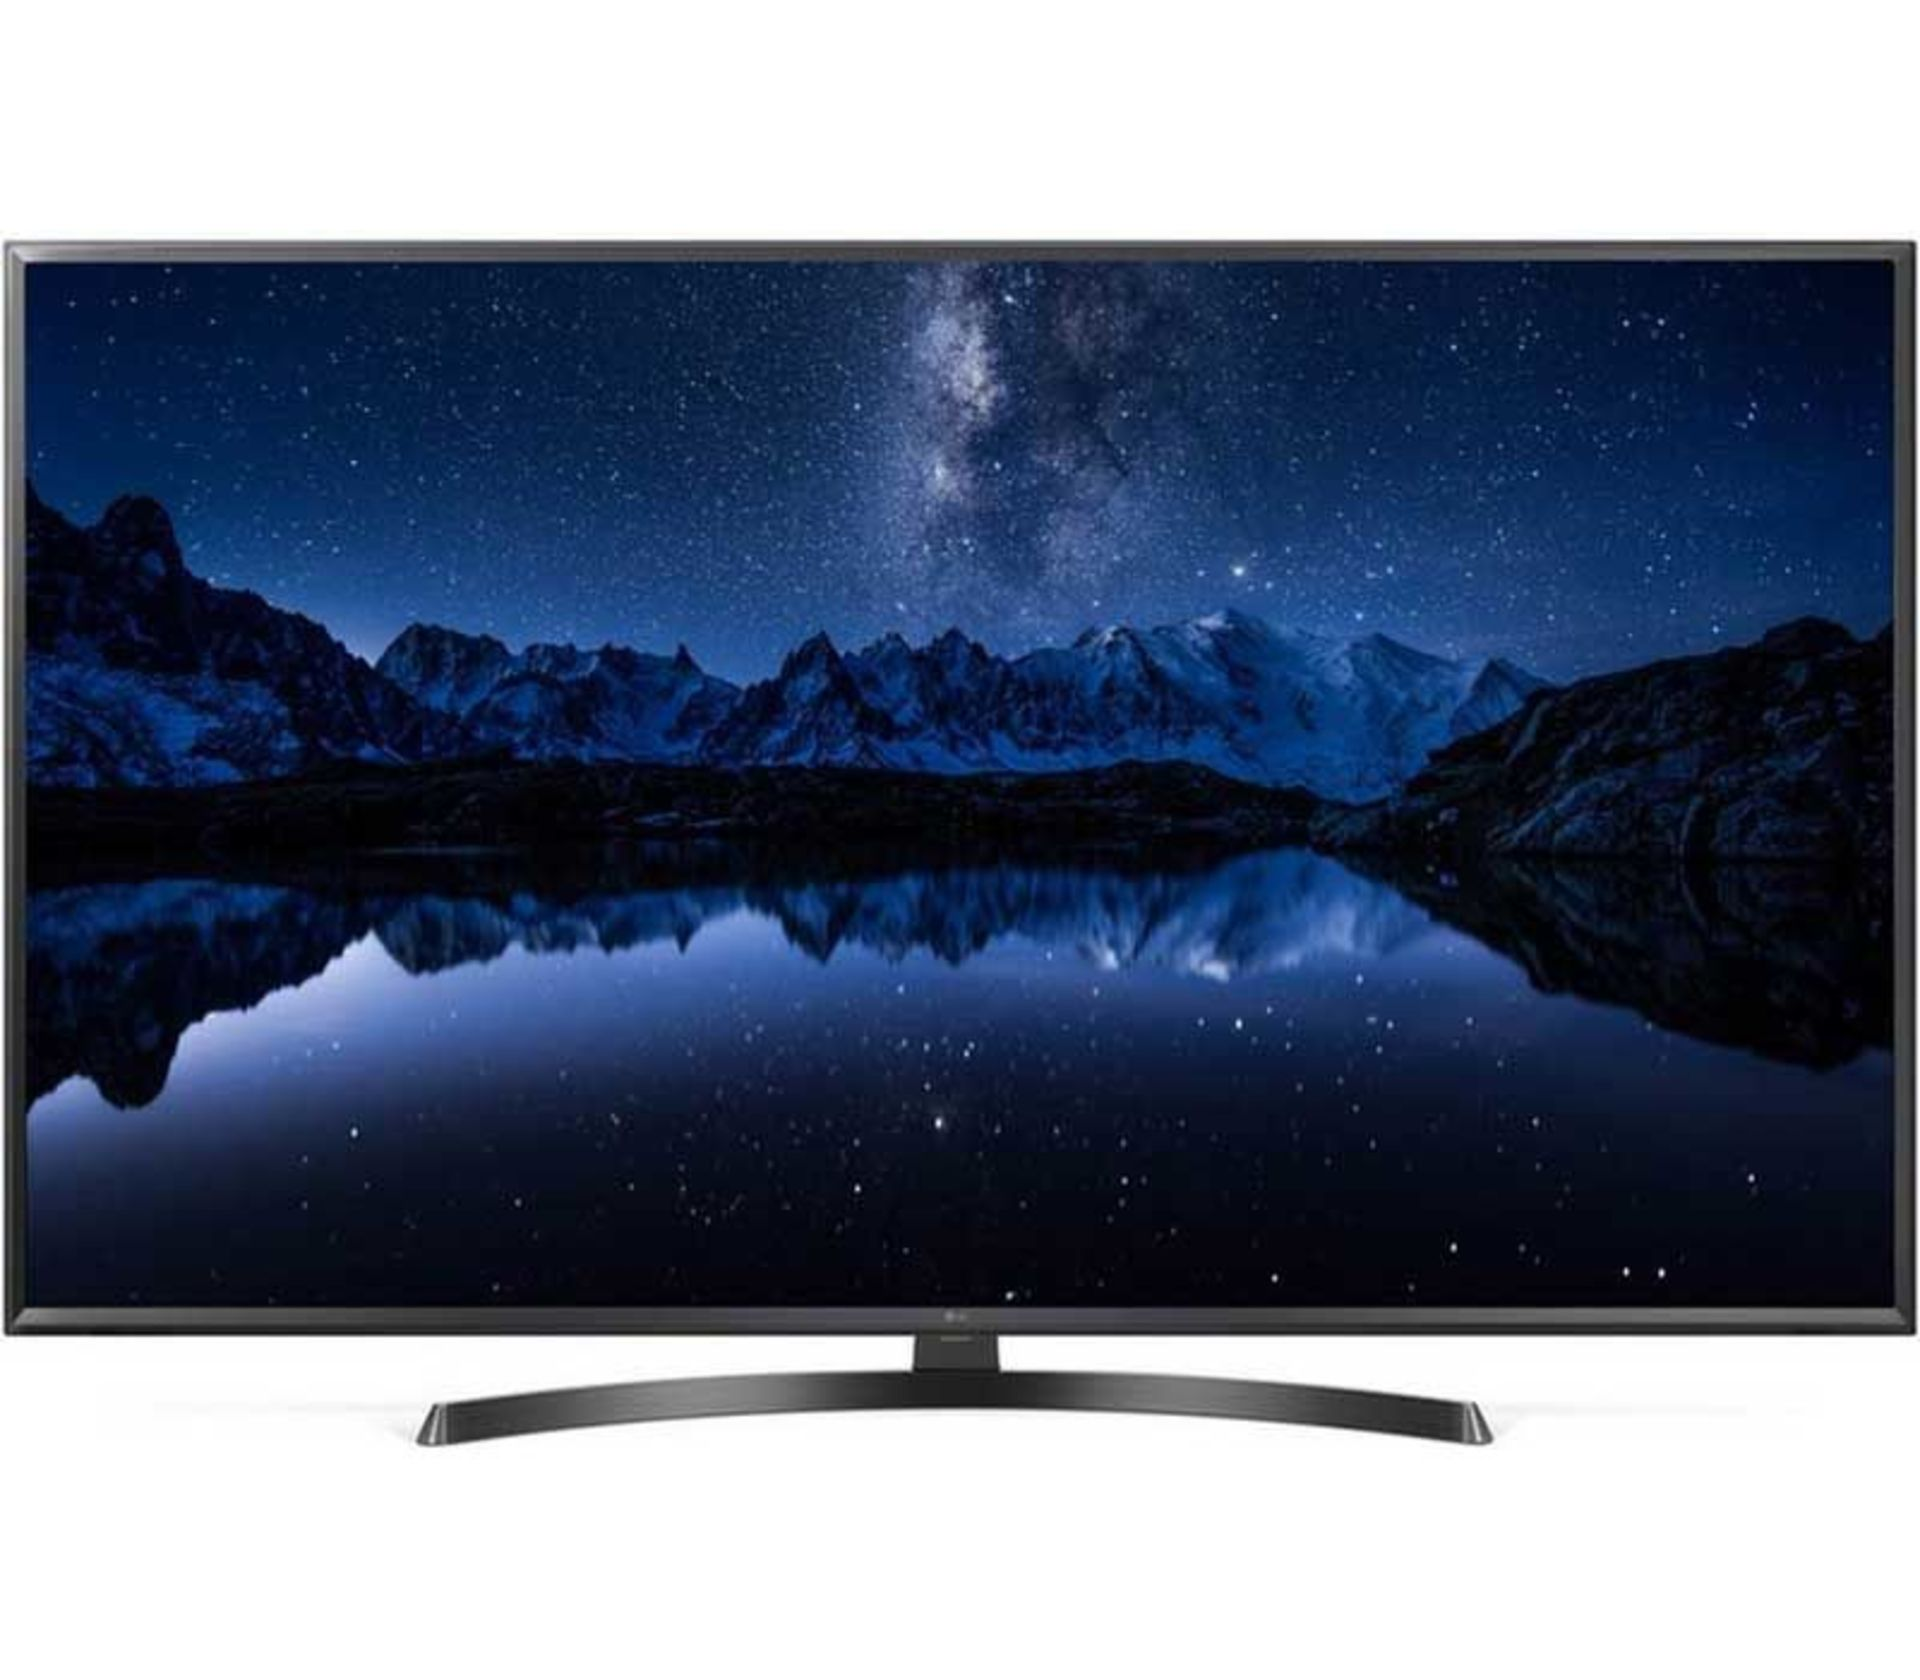 Lotto 30018 - V Grade A LG 43 Inch ACTIVE HDR 4K ULTRA HD LED SMART TV WITH FREEVIEW HD & WEBOS 4.0 & WIFI - AI TV